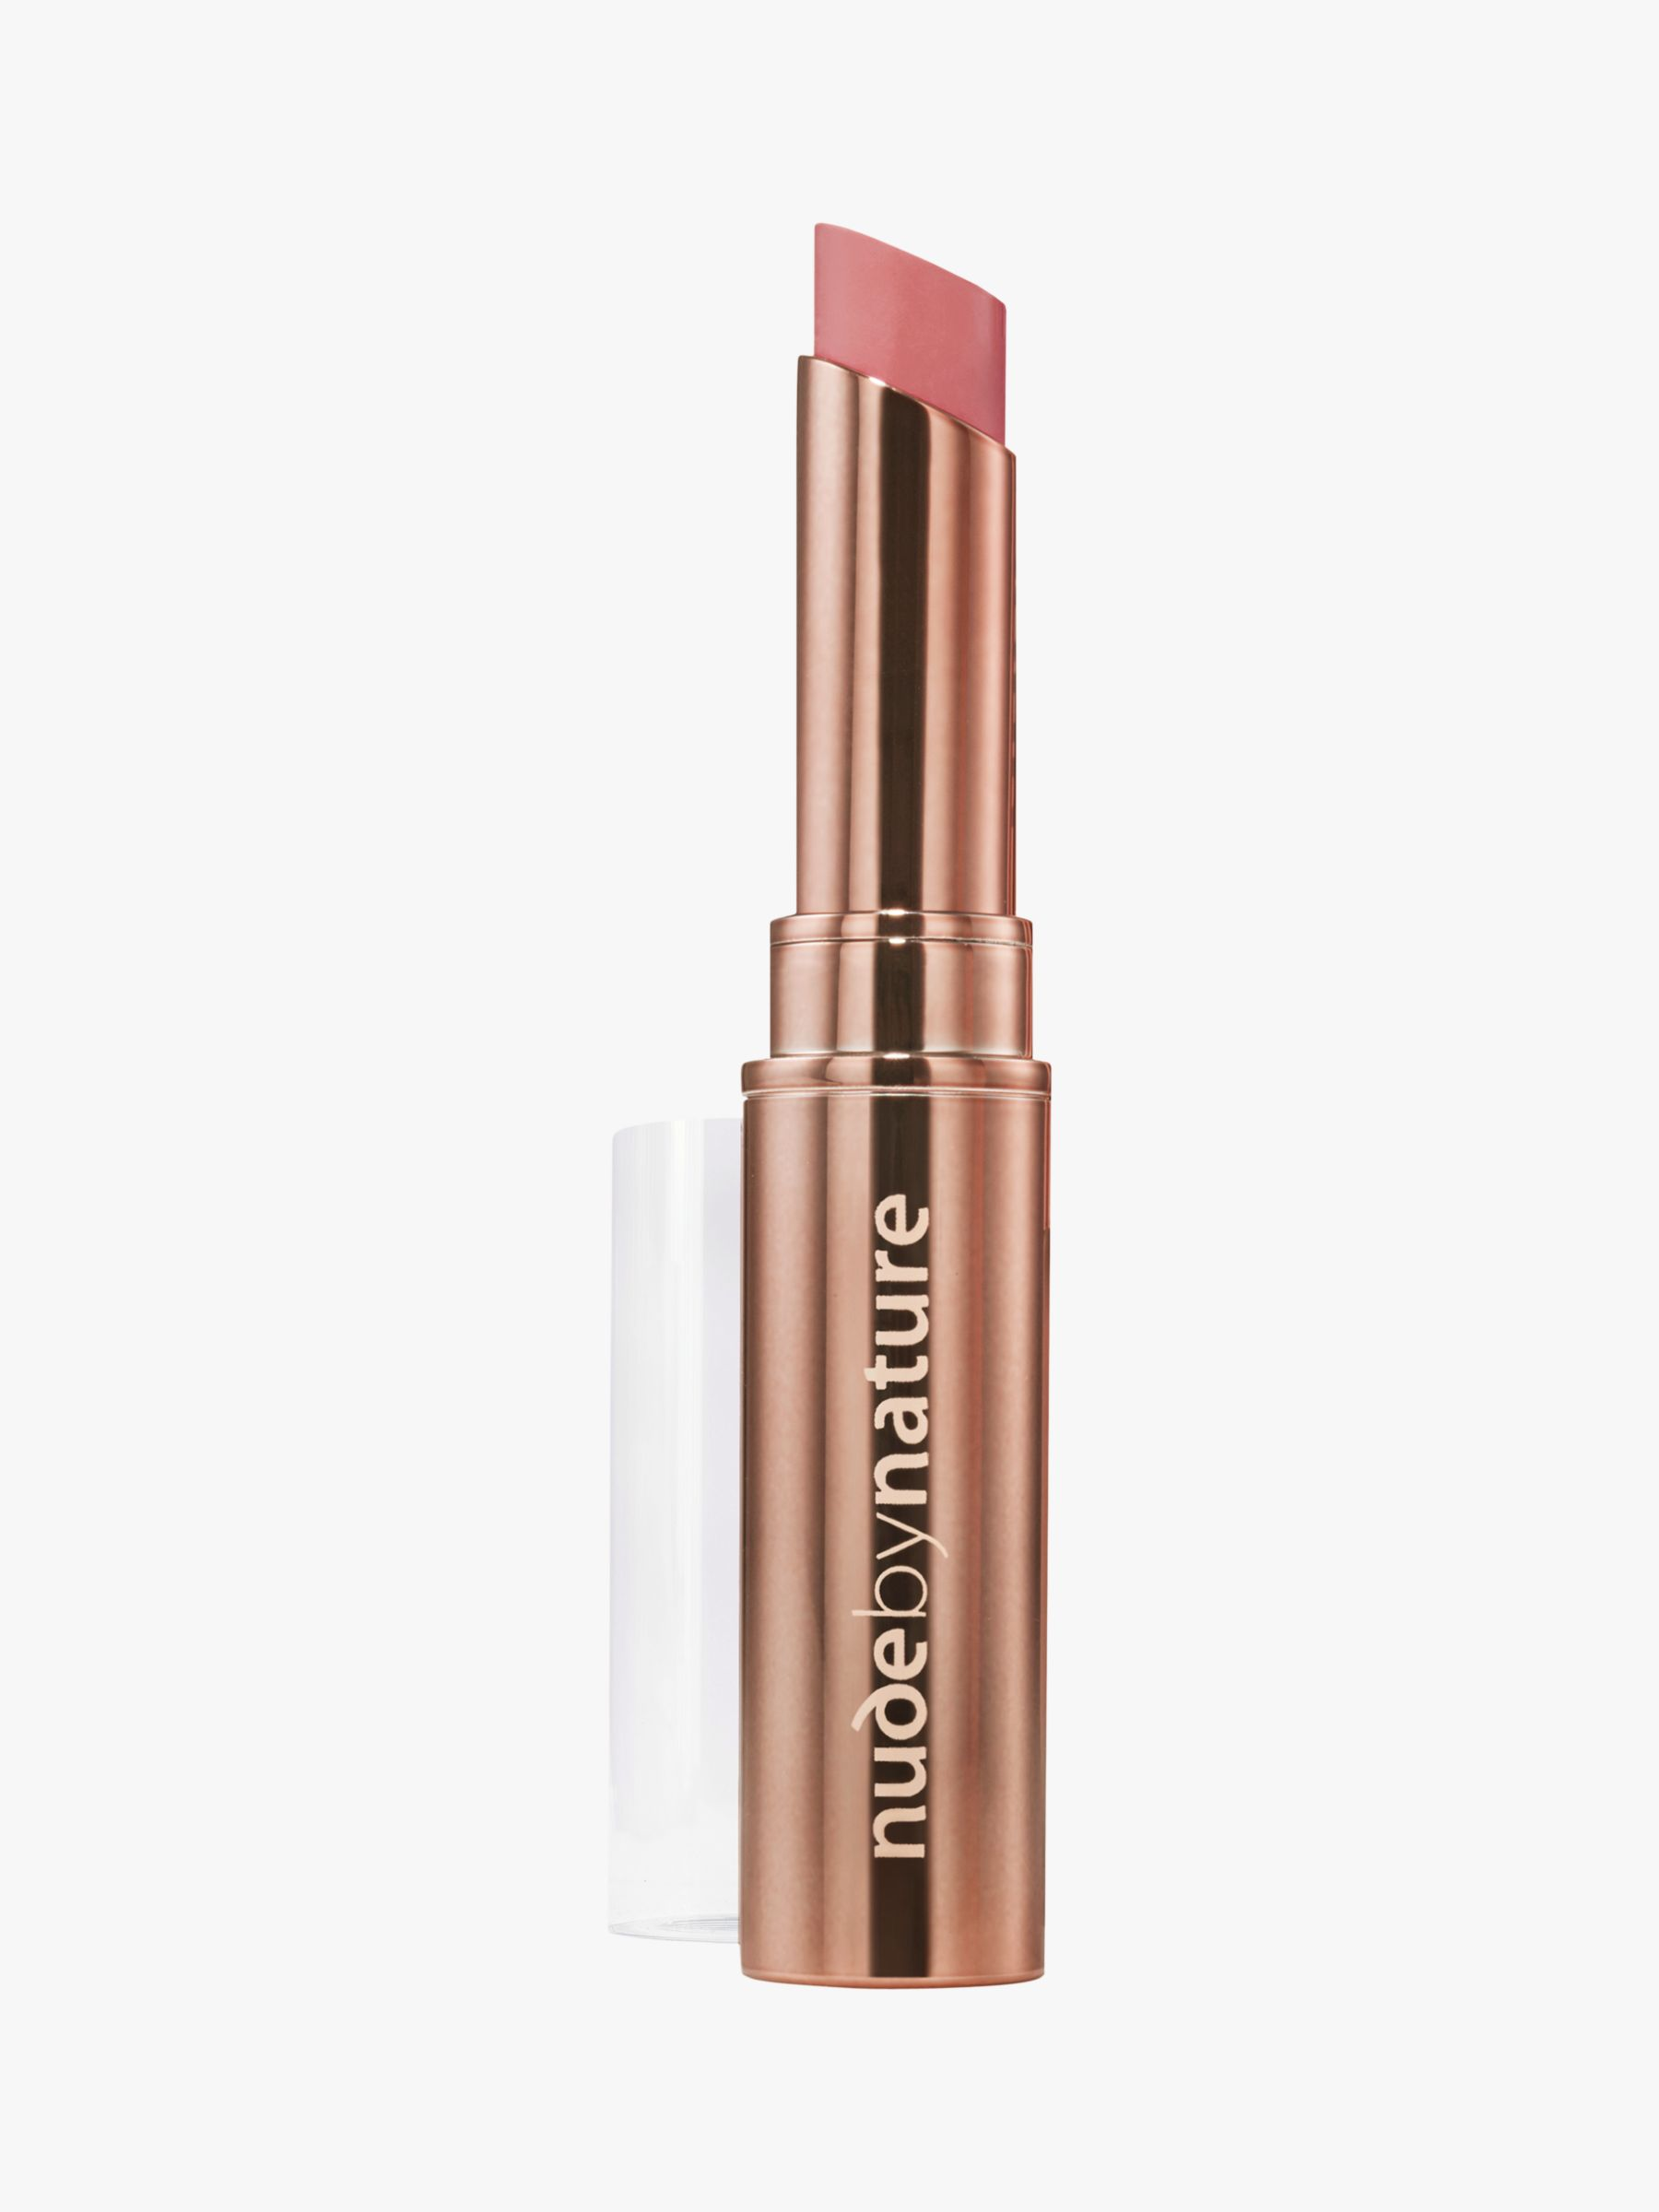 Nude by Nature Nude by Nature Sheer Glow Colour Lip Balm